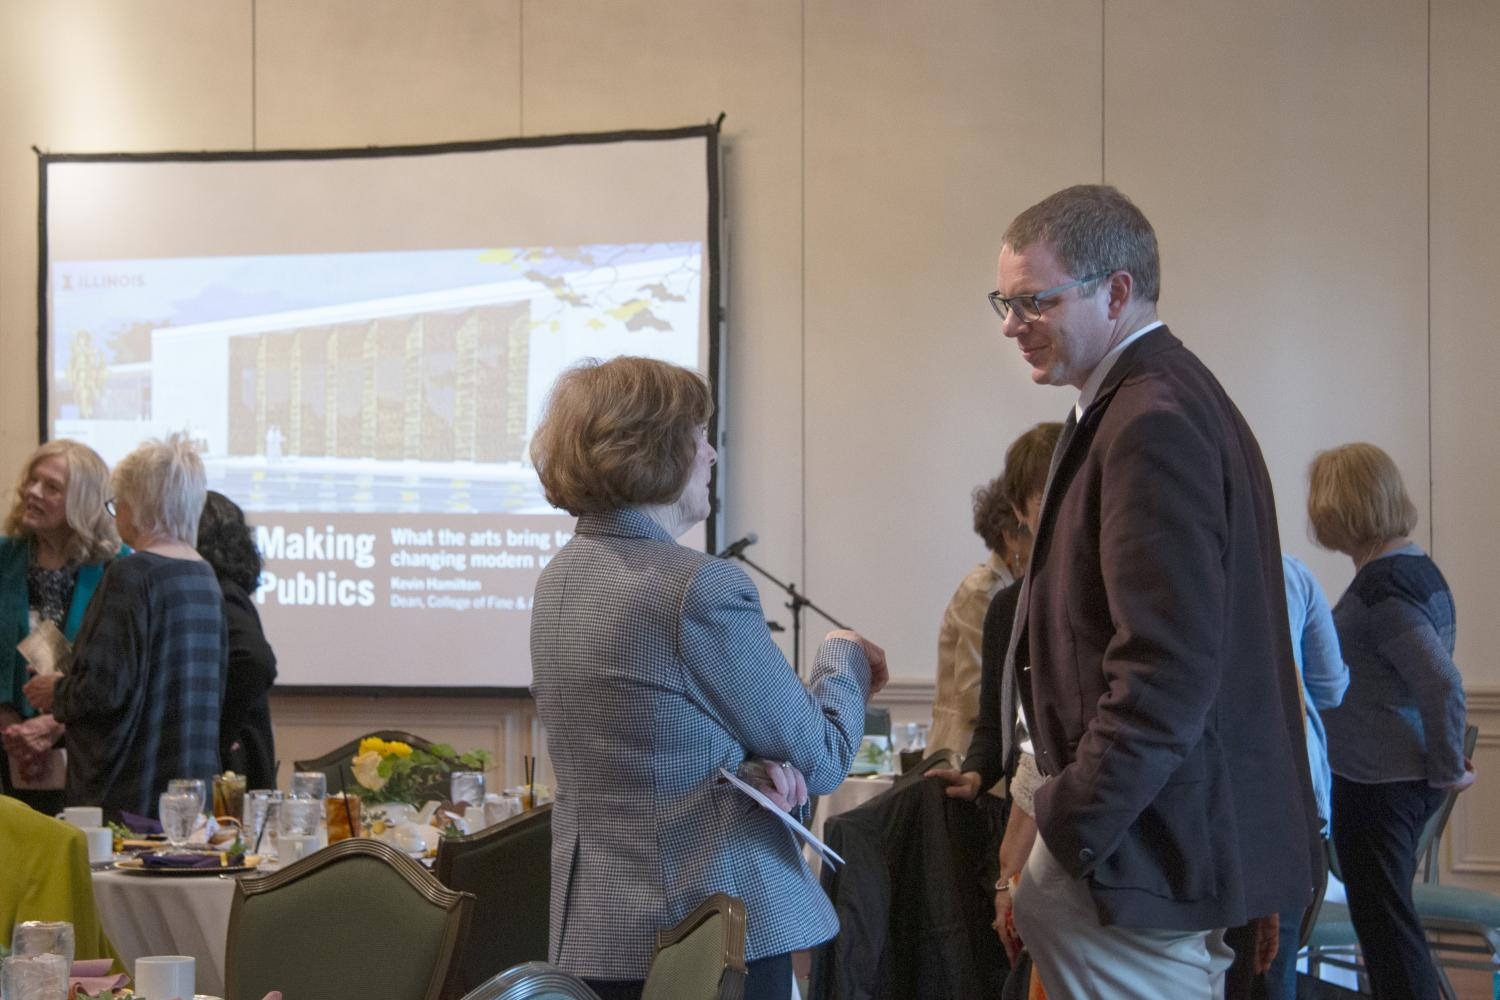 Clare Haussermann talks with Dean Kevin Hamilton of the College of Fine and Applied Arts before the luncheon begins.